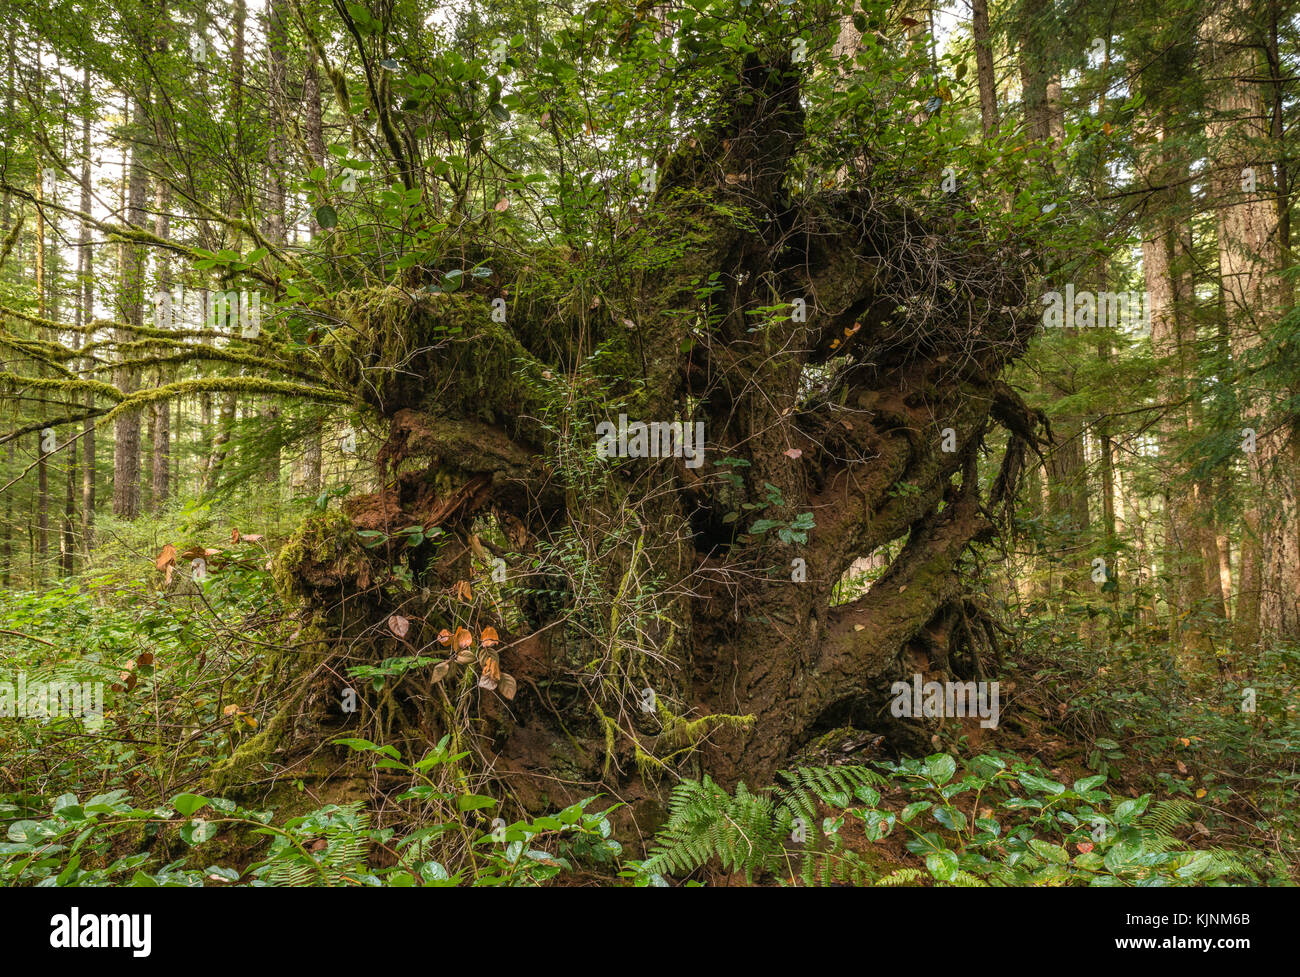 Roots of fallen trees on Sheppard Trail, temperate rainforest near Quathiaski Cove, Quadra Island, British Columbia, - Stock Image